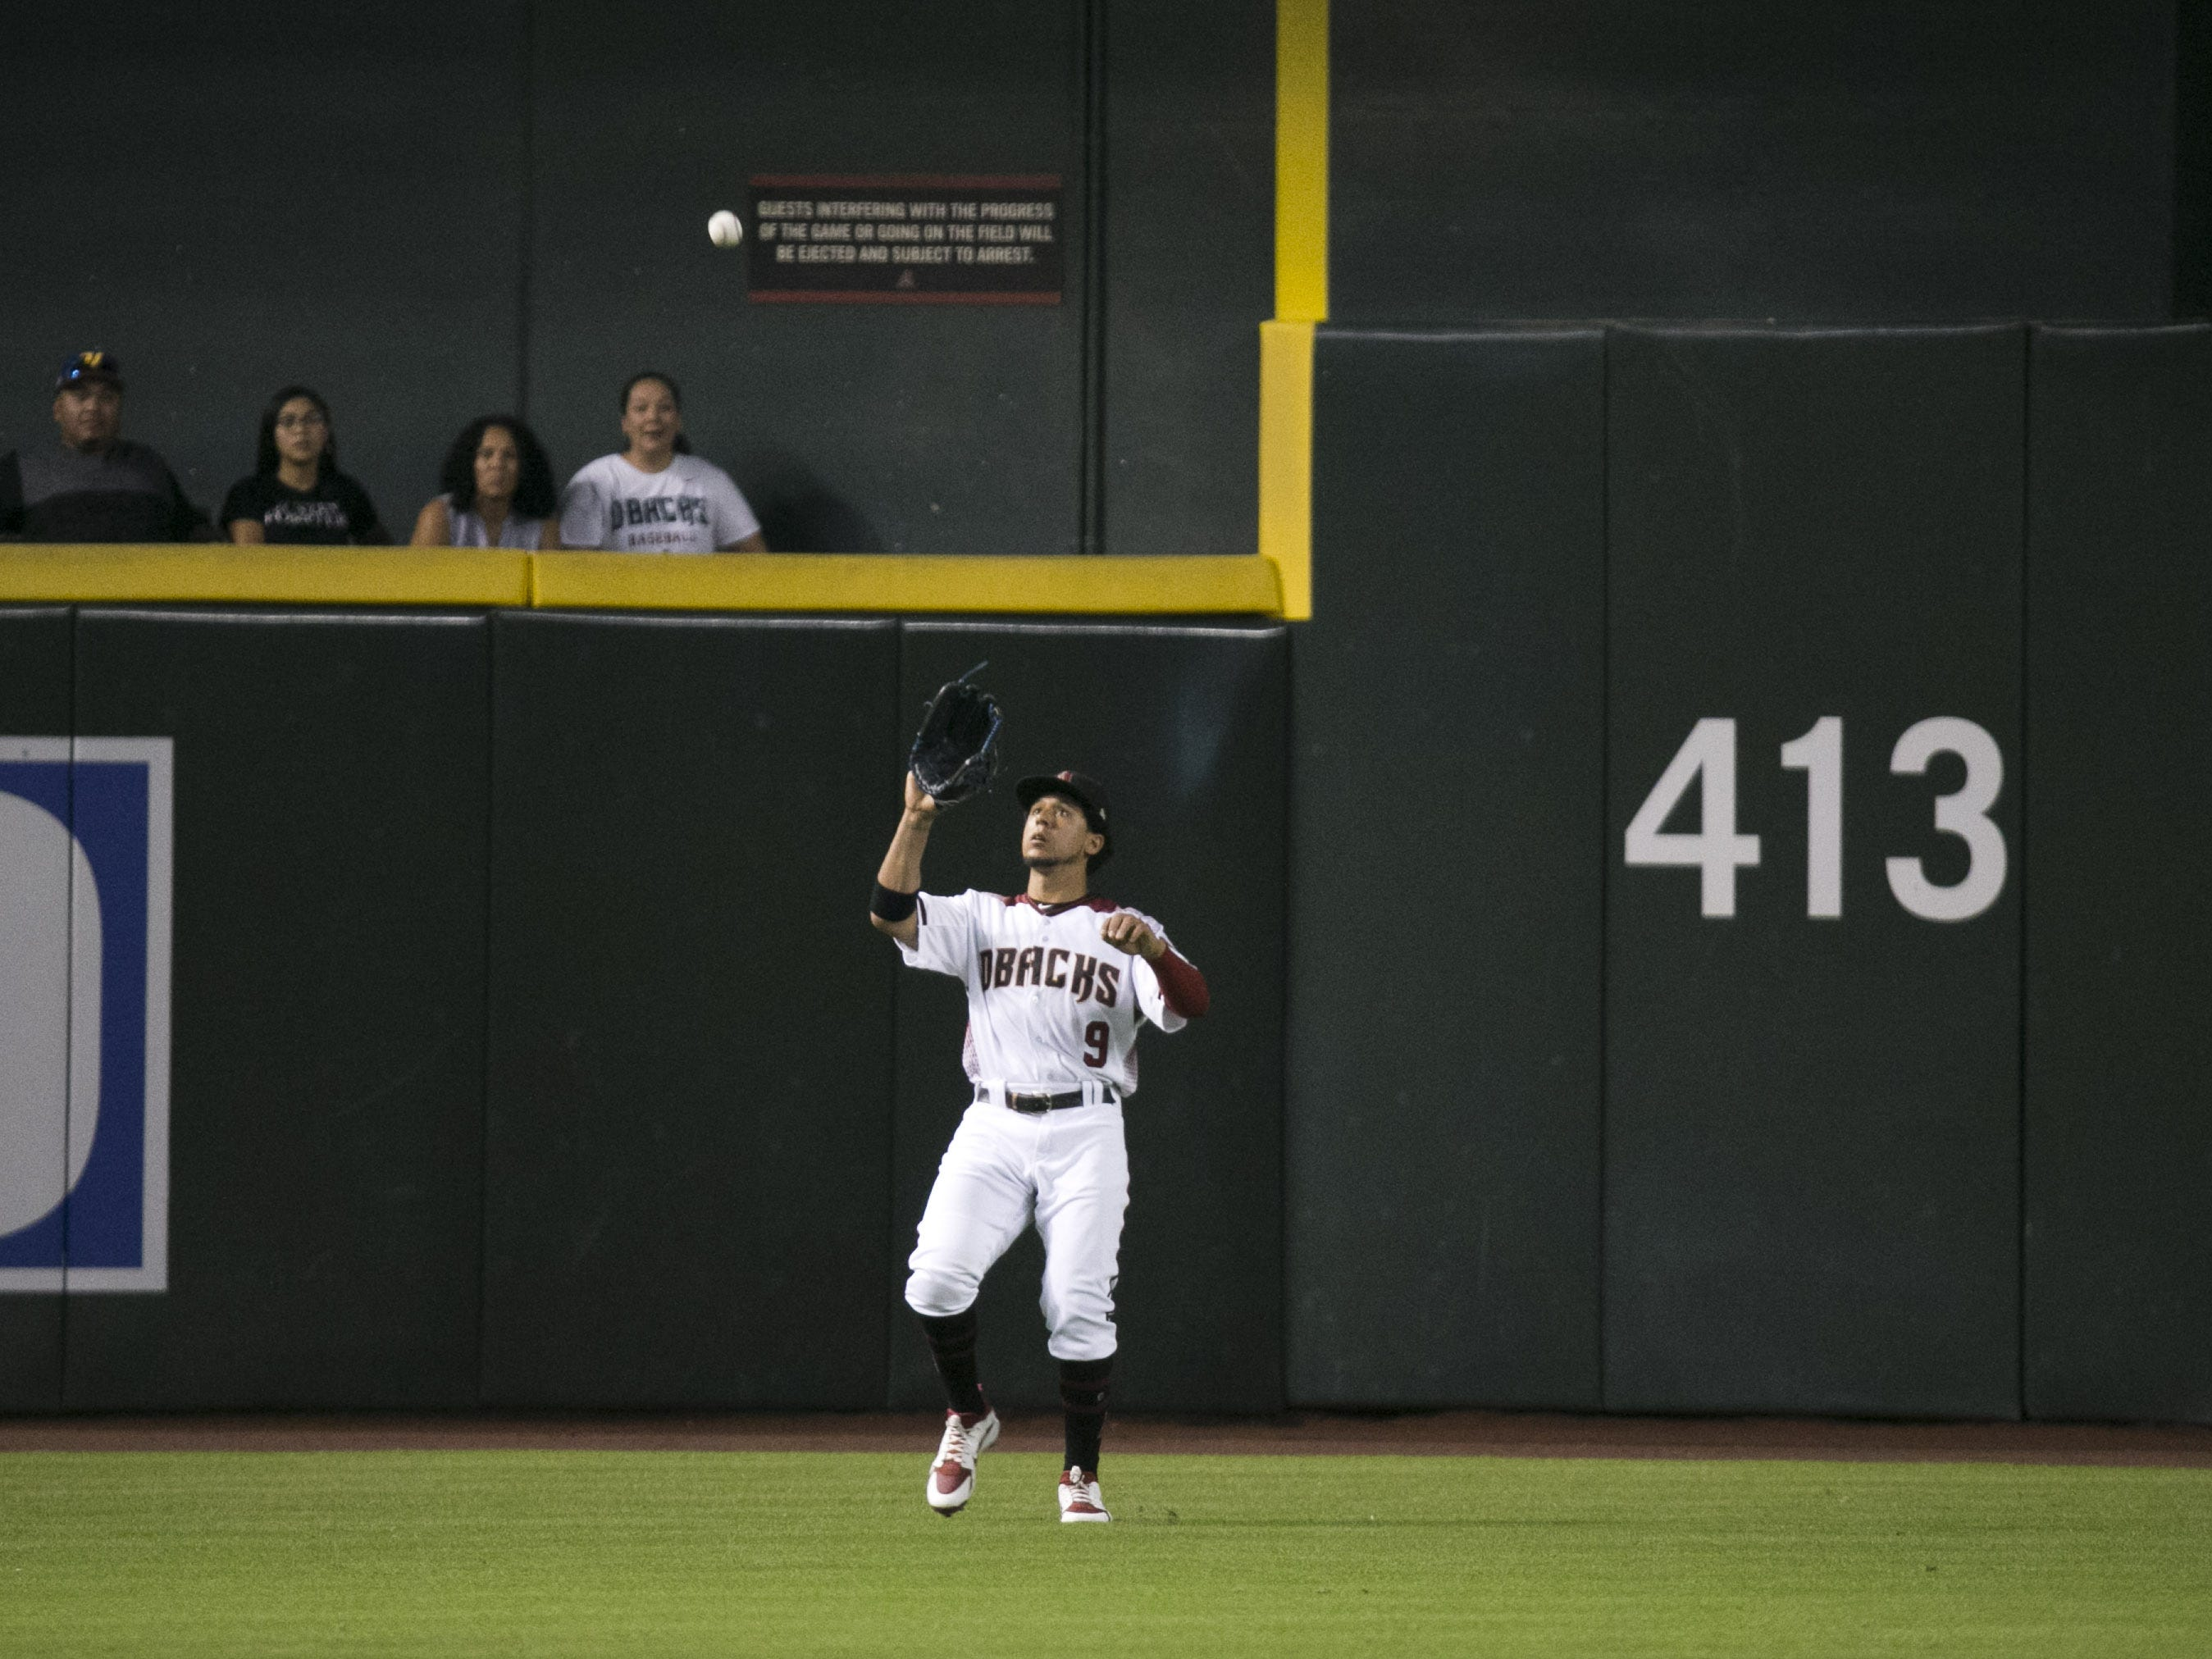 Diamondbacks outfielder John Jay catches a pop-up during the fifth inning of the major league baseball game against the Padres at Chase Field in Phoenix on Monday, September 3, 2018.